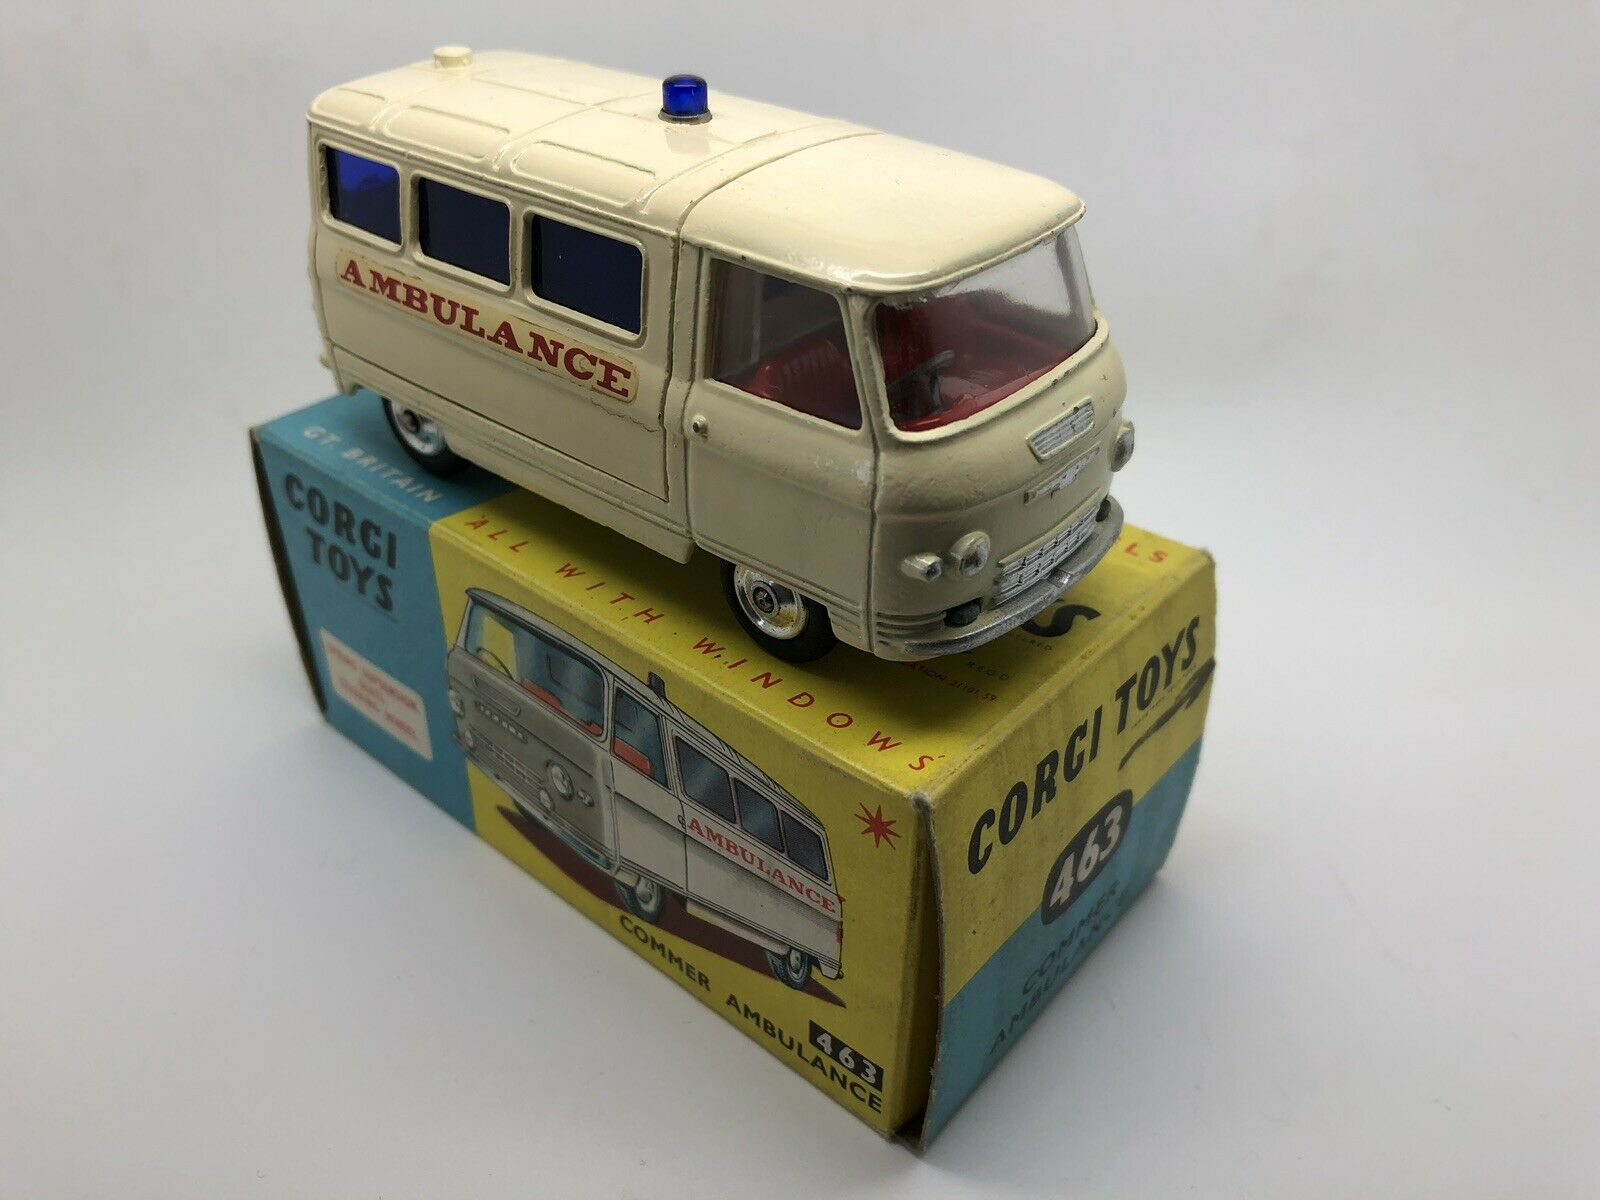 CORGI 463 COMMER AMBULANCE, RARE CREAM CREAM CREAM VERSION, VN MINT IN BOX. 887